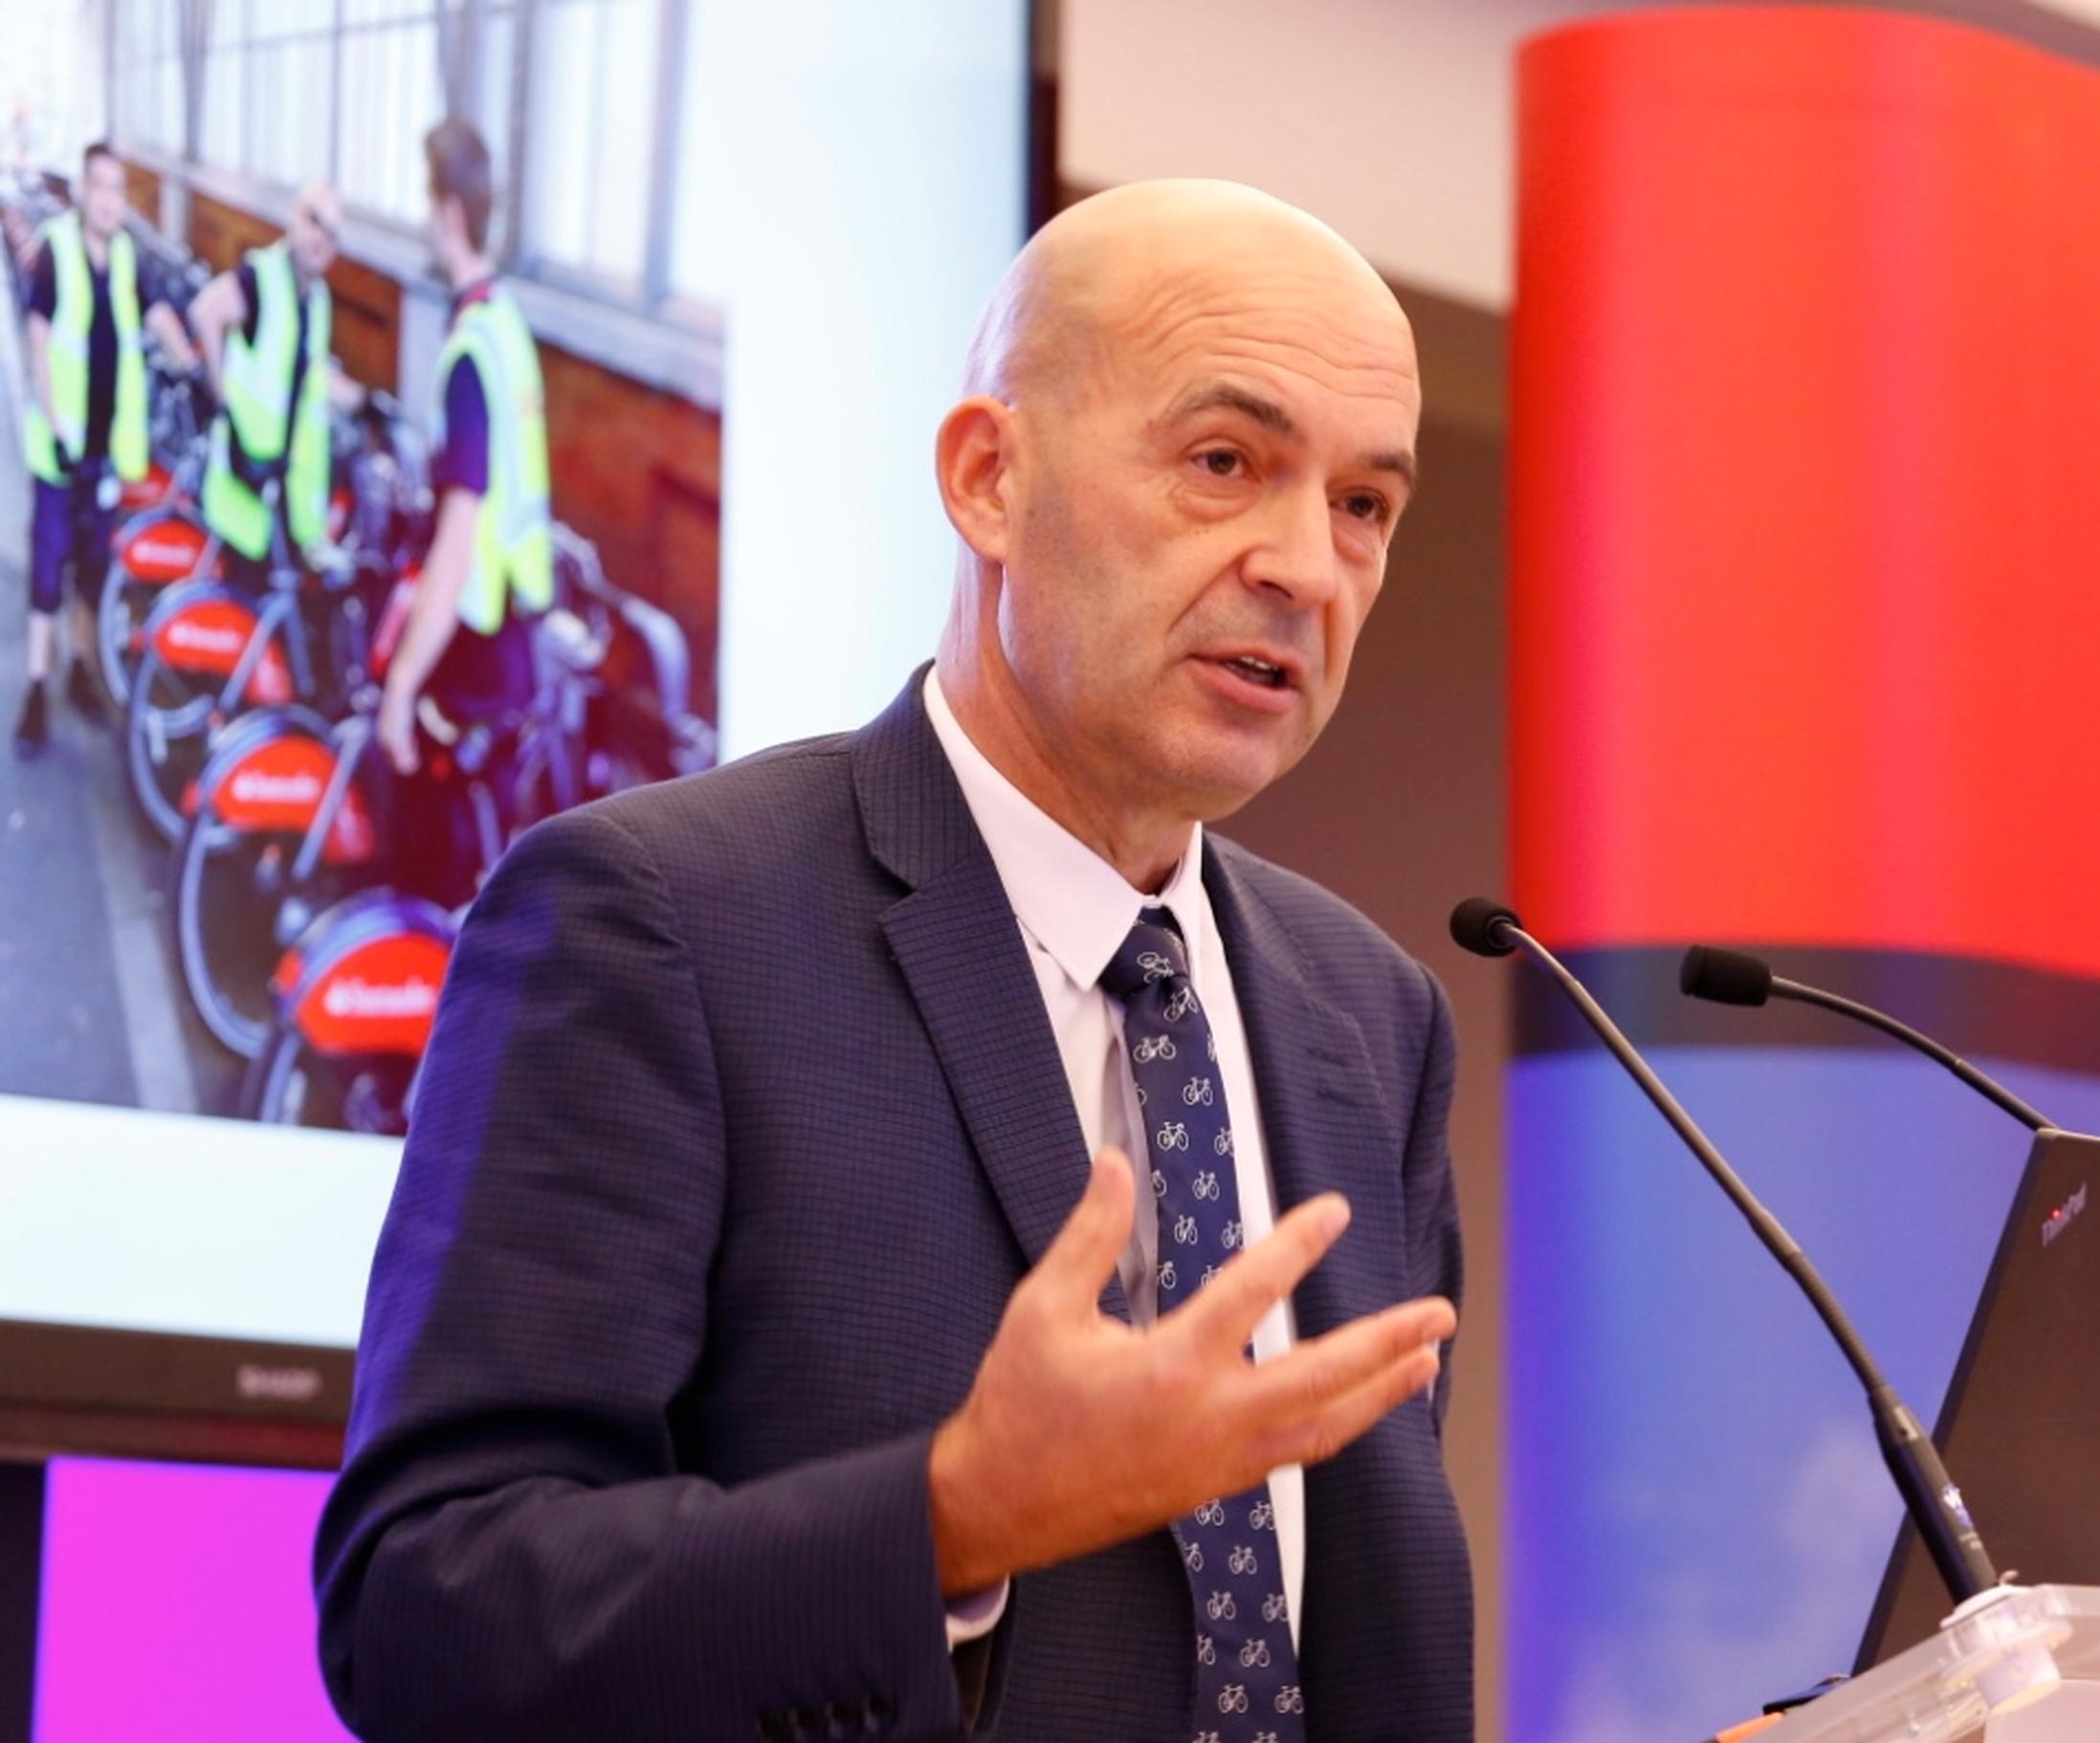 At the National Cycle-Rail Awards TfL`s David Eddington called on Network Rail to provide more space for hire bikes at stations